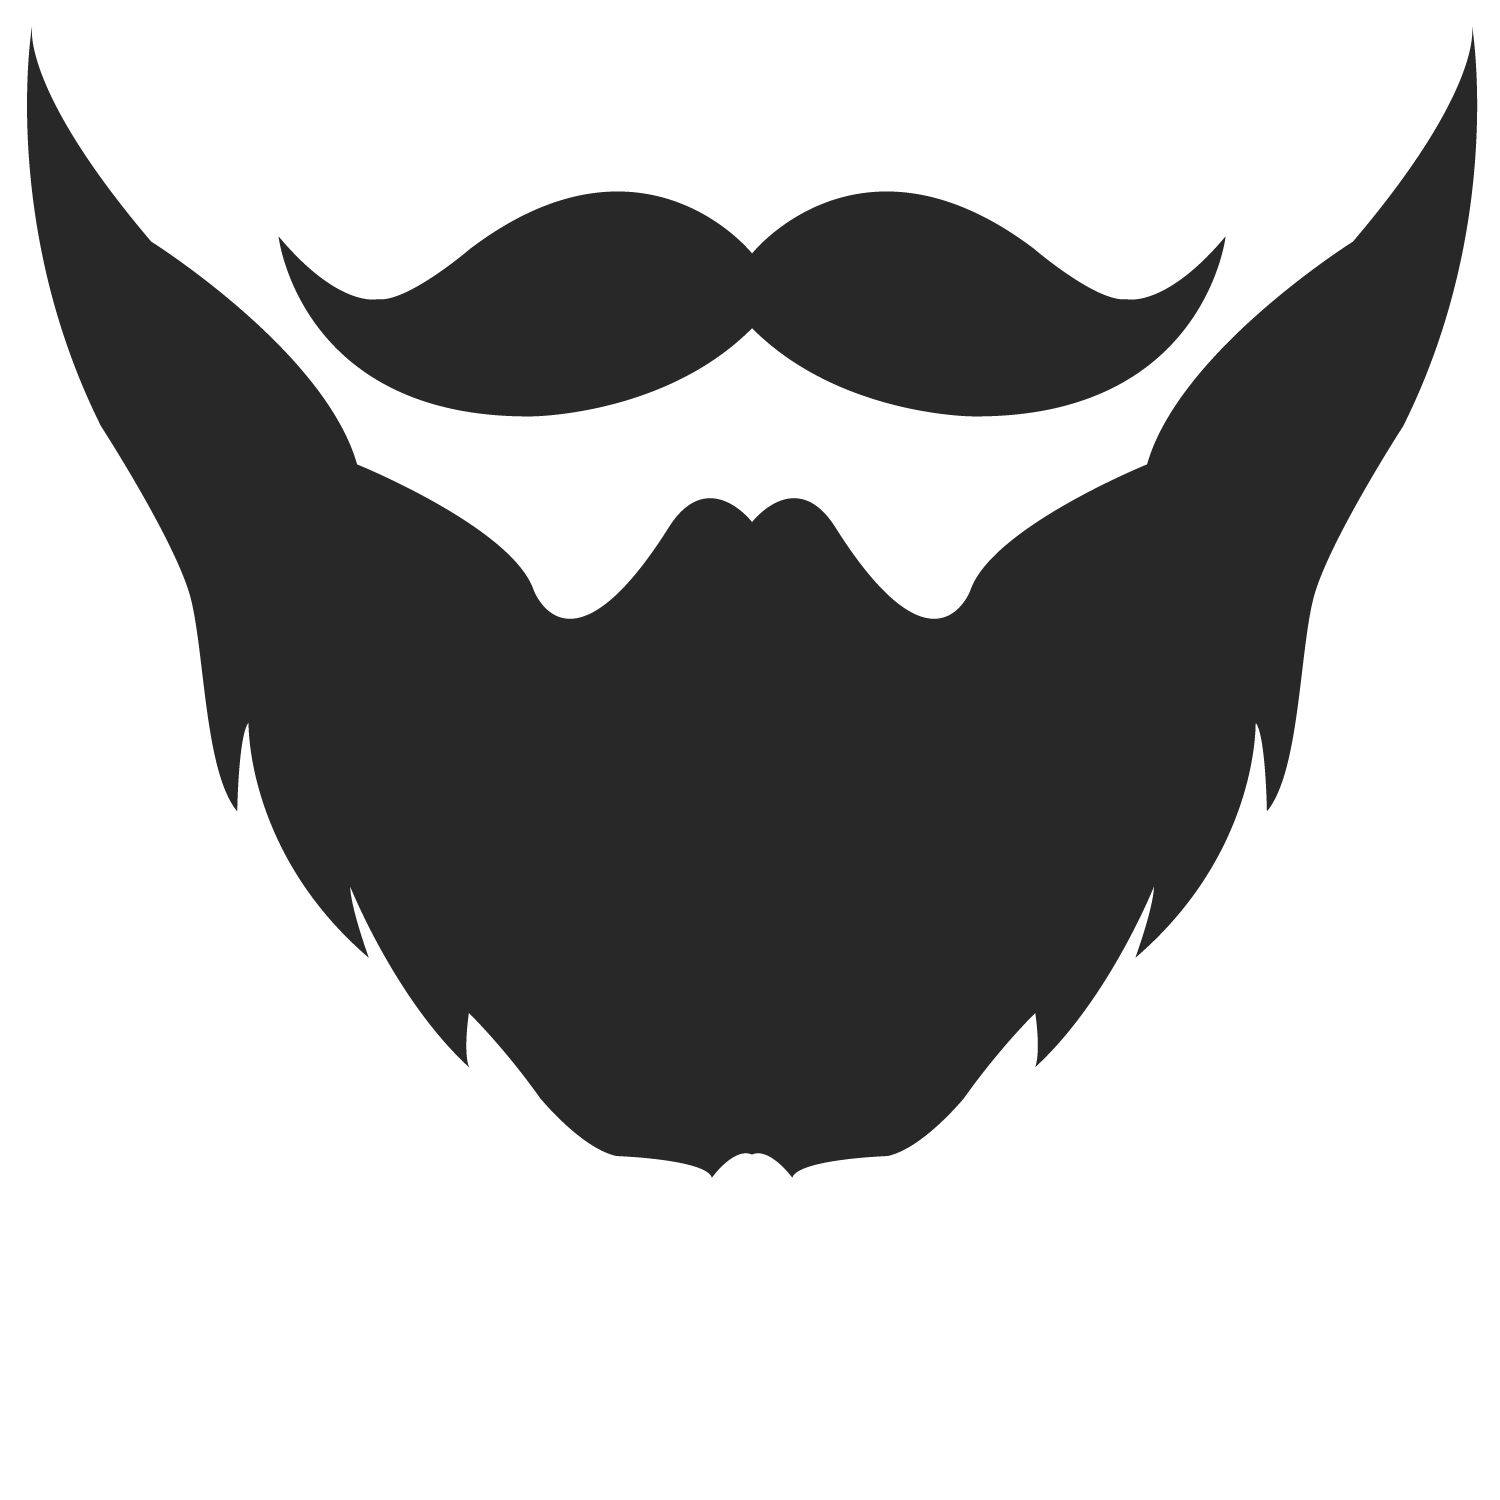 Beard logo google search. Sunglasses clipart bearded man